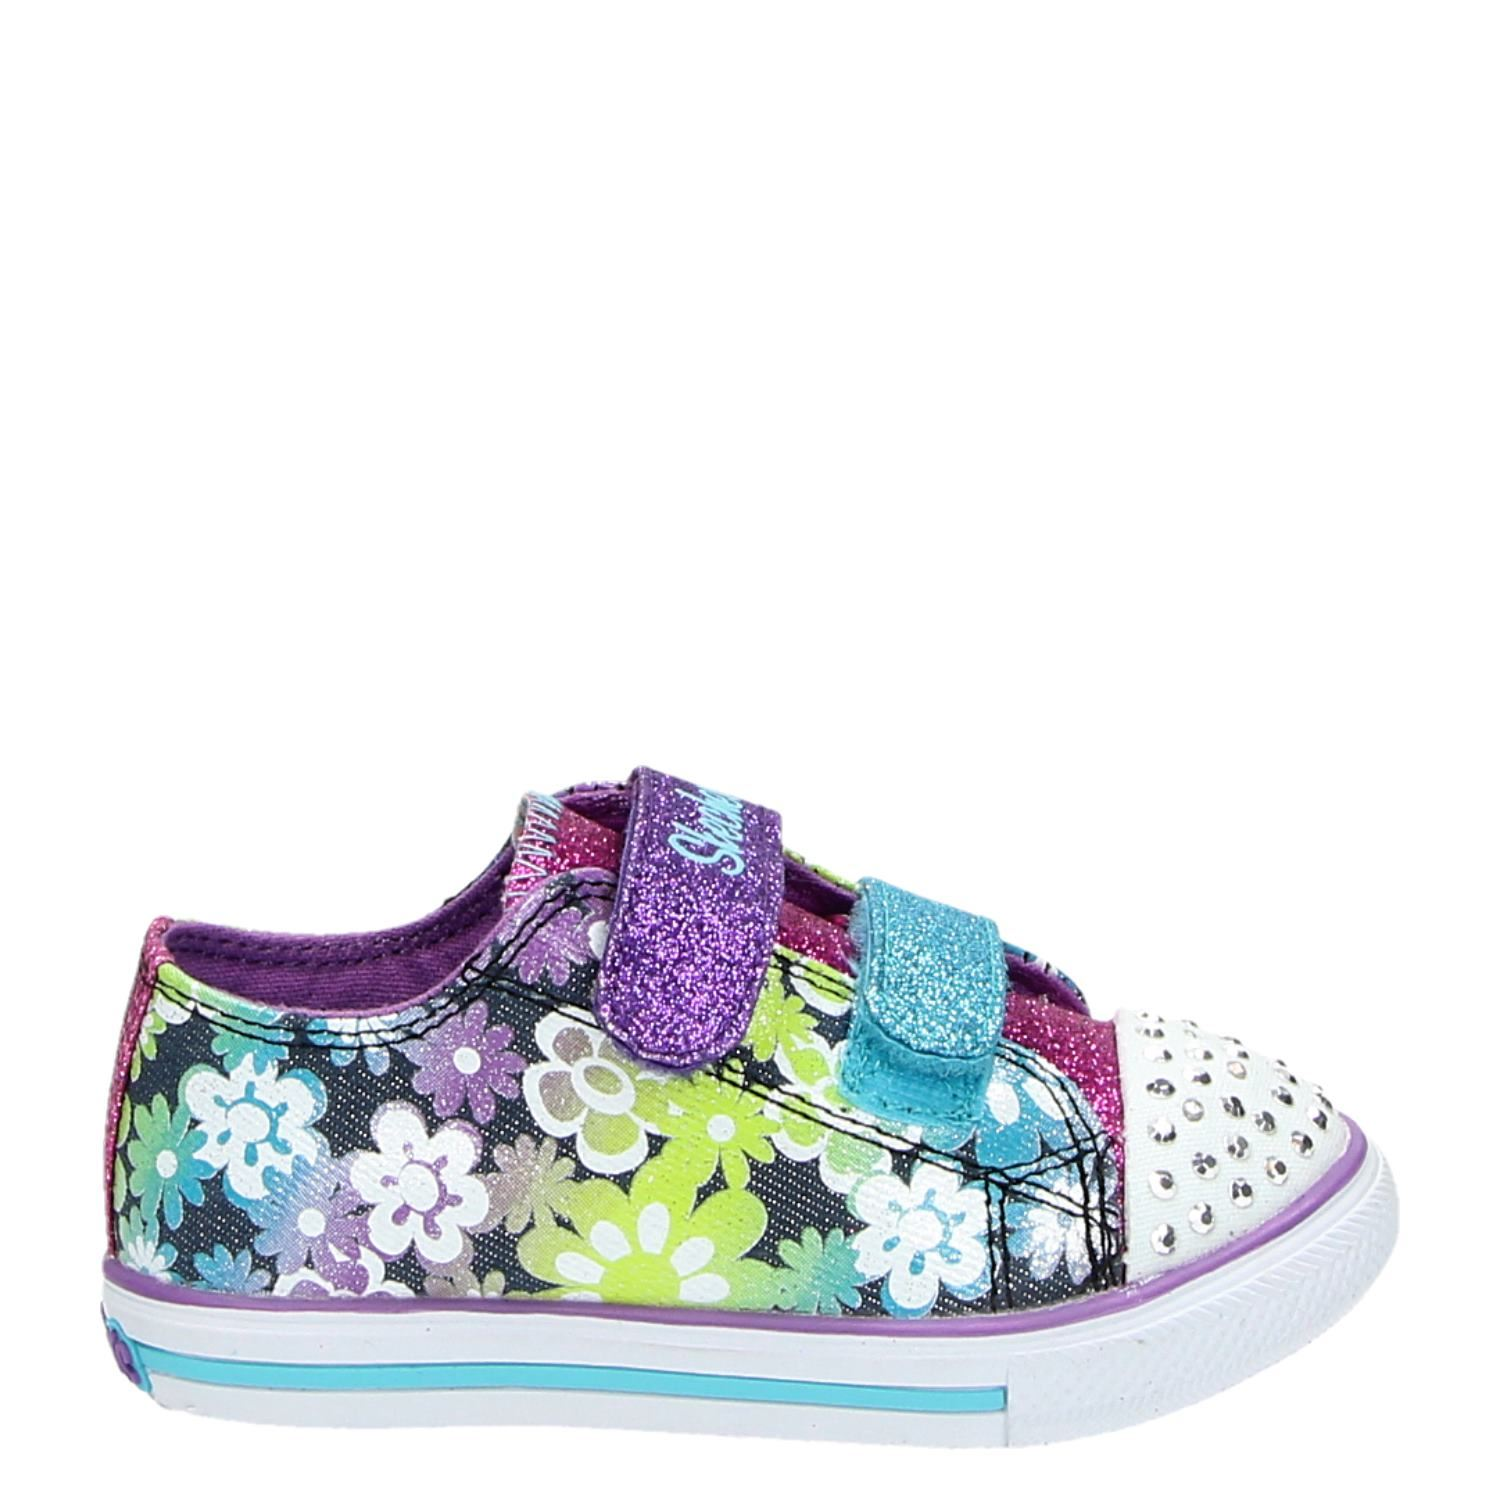 Twinkle Toes Rose Chaussures Sketchers wazHi